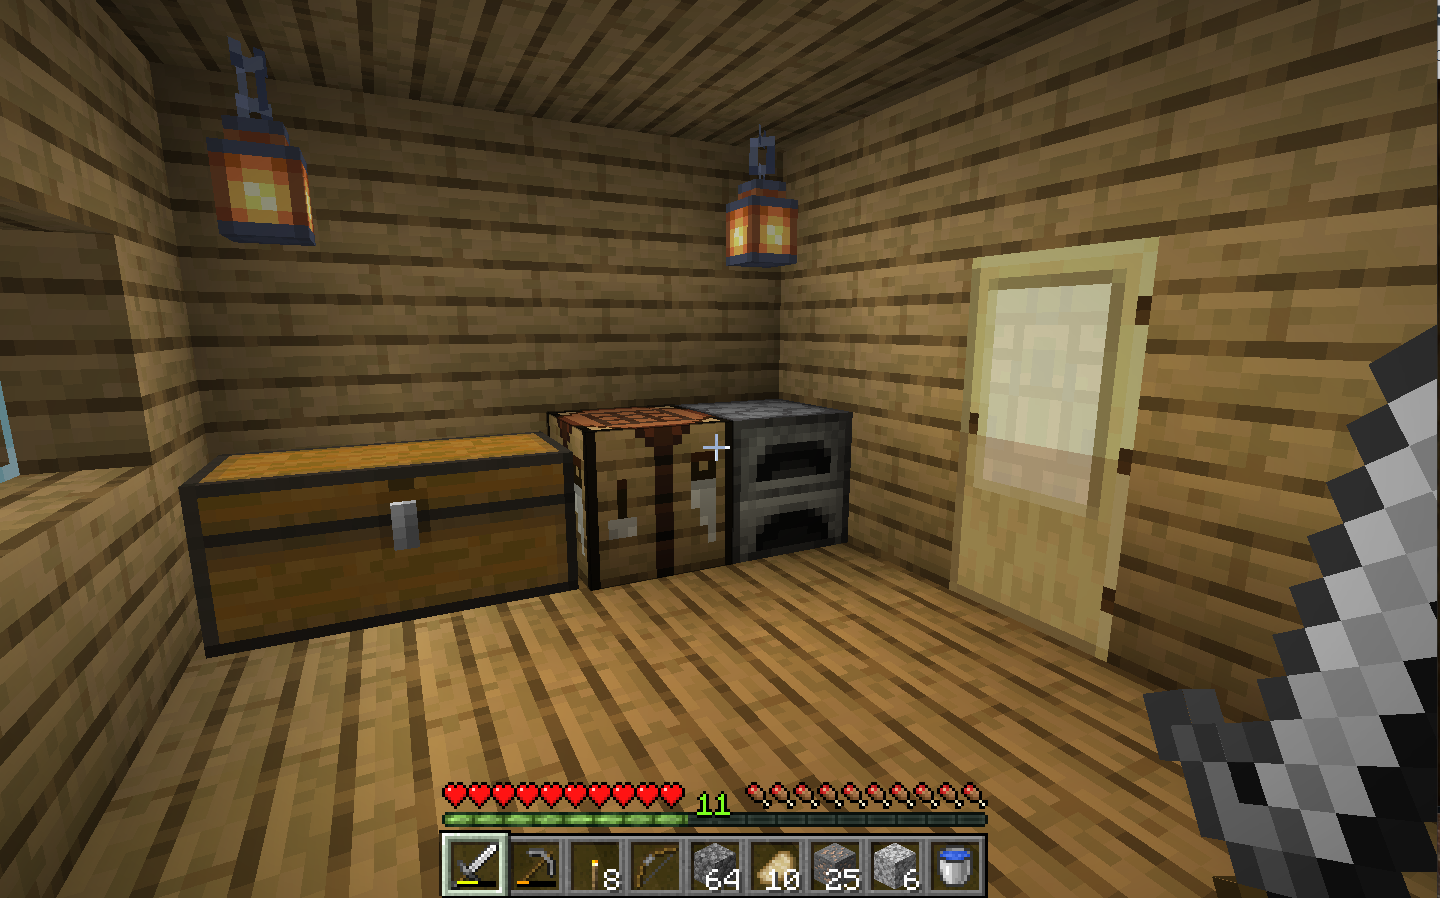 A view of the interior of a house in minecraft, with regular textures